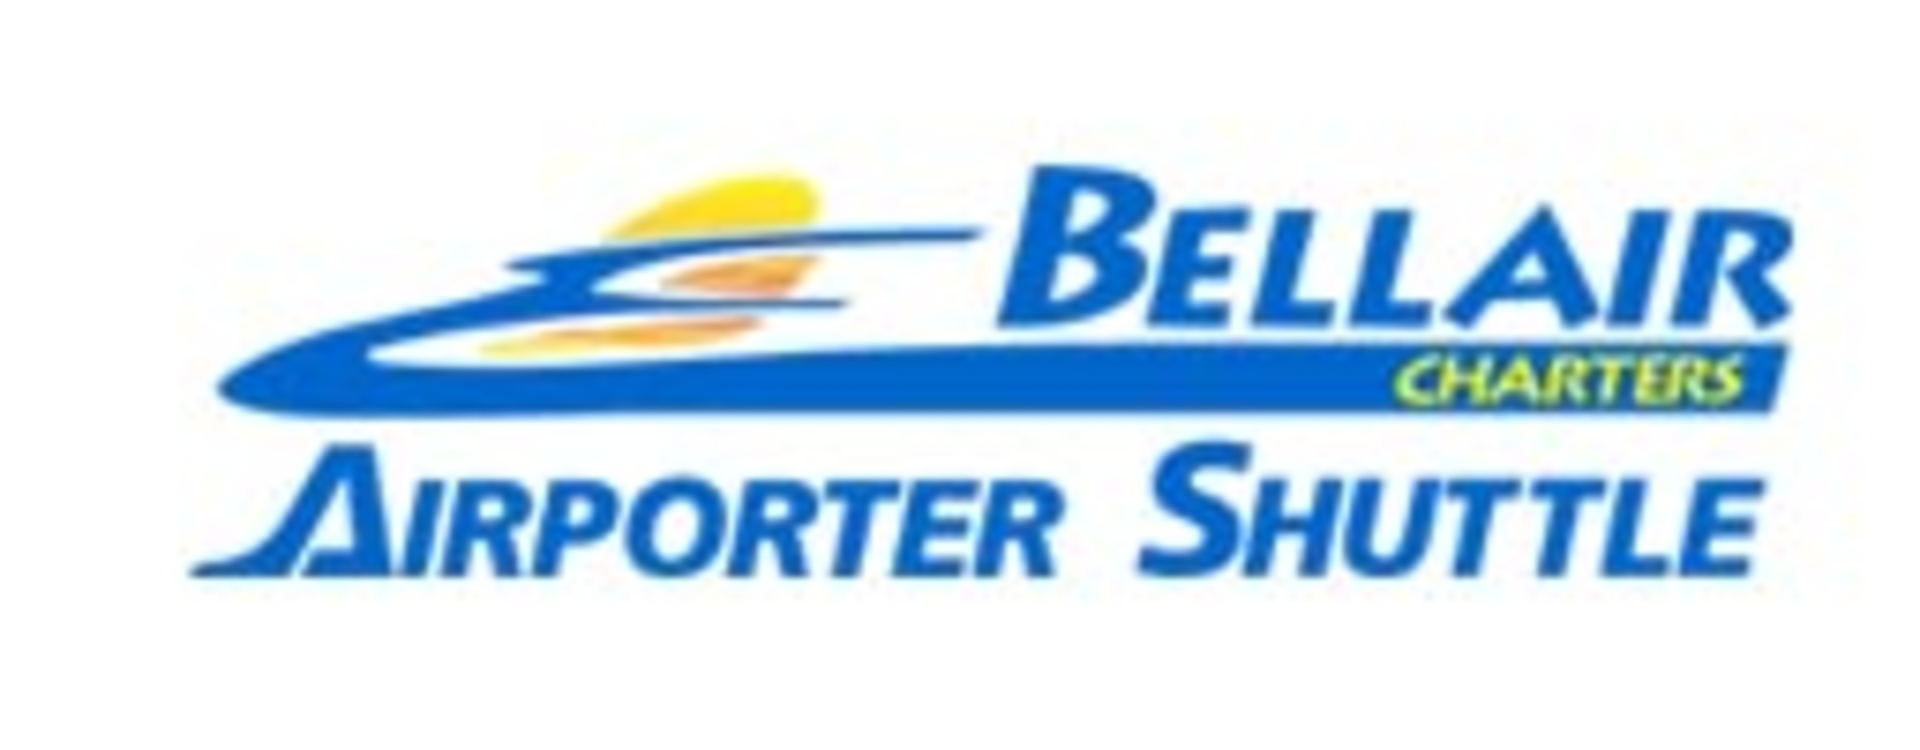 BellAir_Charters___Airporter_Shuttle.png